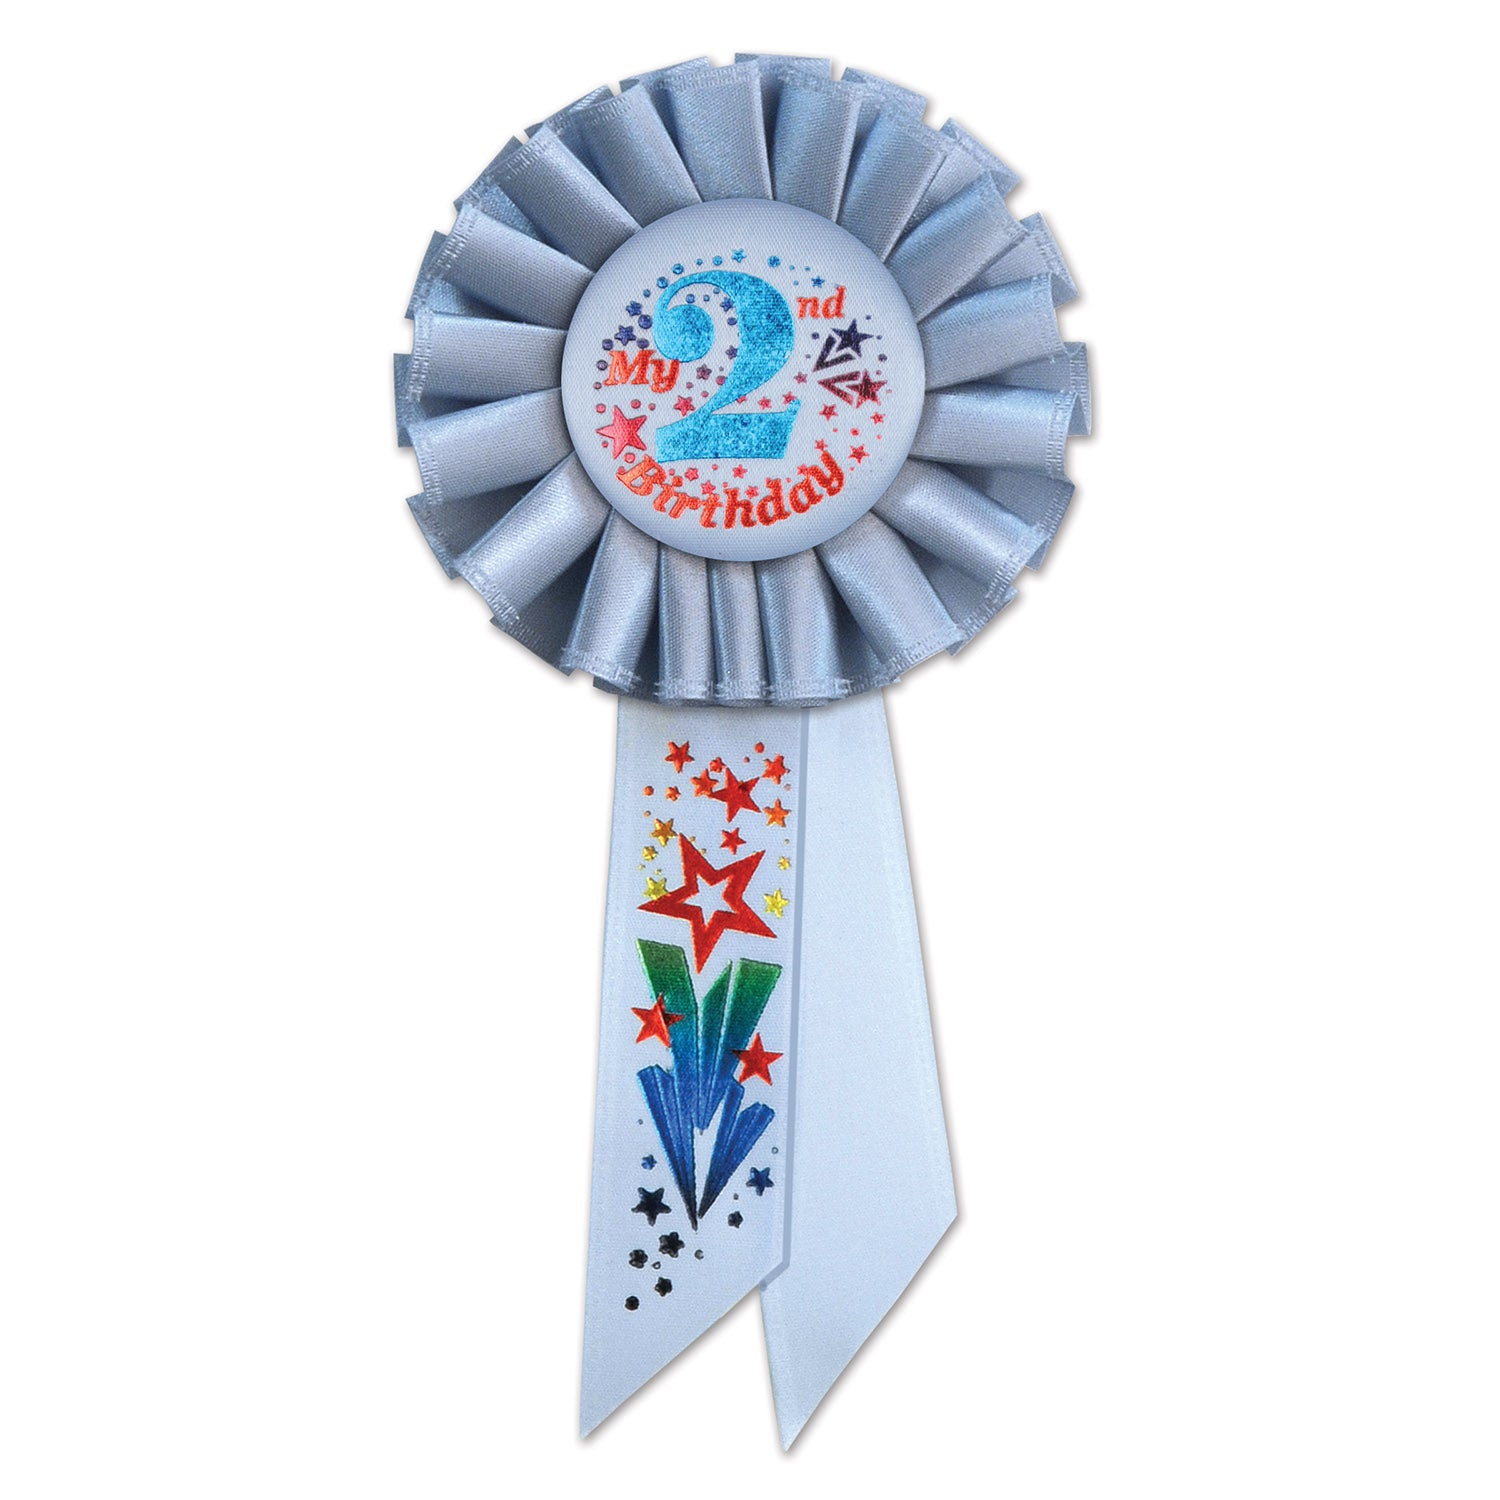 My 2nd Birthday Rosette, blue by Beistle - 2nd Birthday Party Decorations